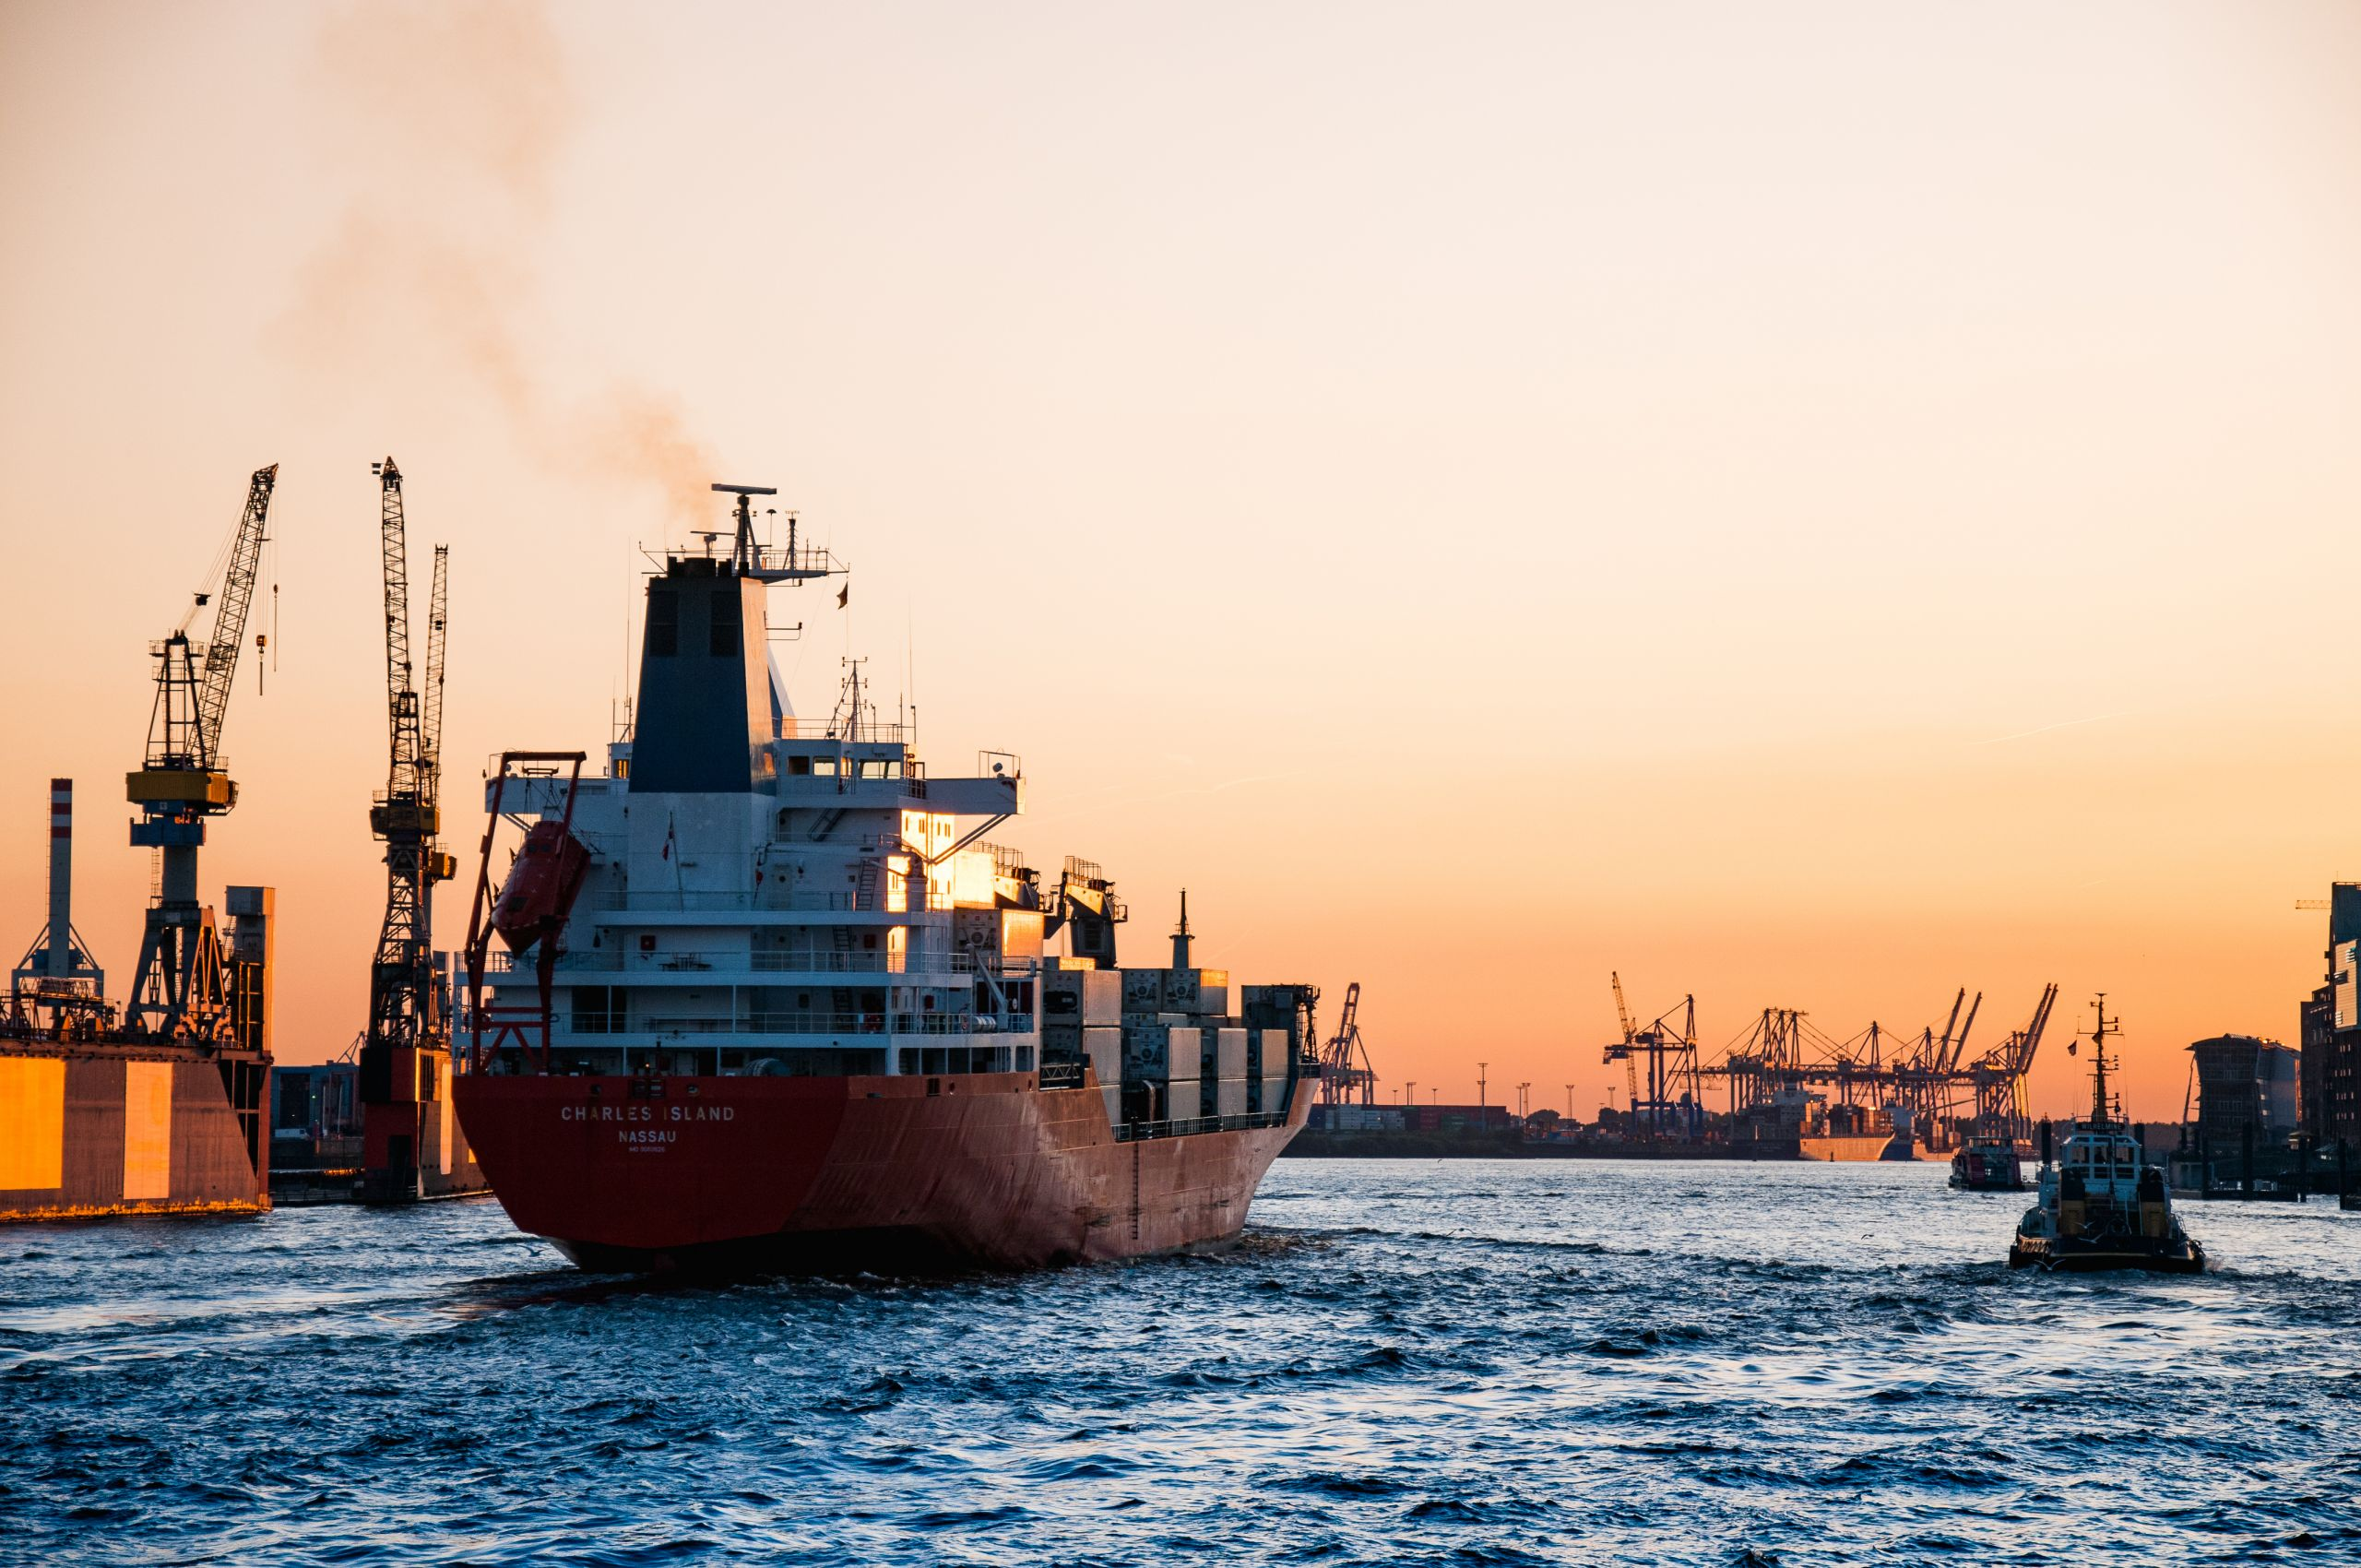 Sea freight delivering cargo